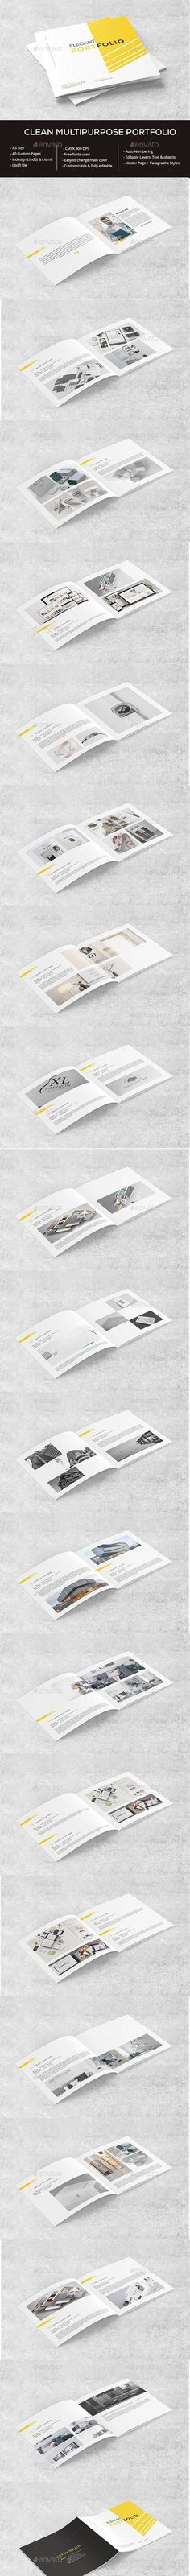 Clean Square Portfolio Portfolio Brochure Template by wpservicios. Stationery Printing, Stationery Design, Brochure Design, Brochure Template, Print Design, Graphic Design, Print Templates, Cleaning, Brochures